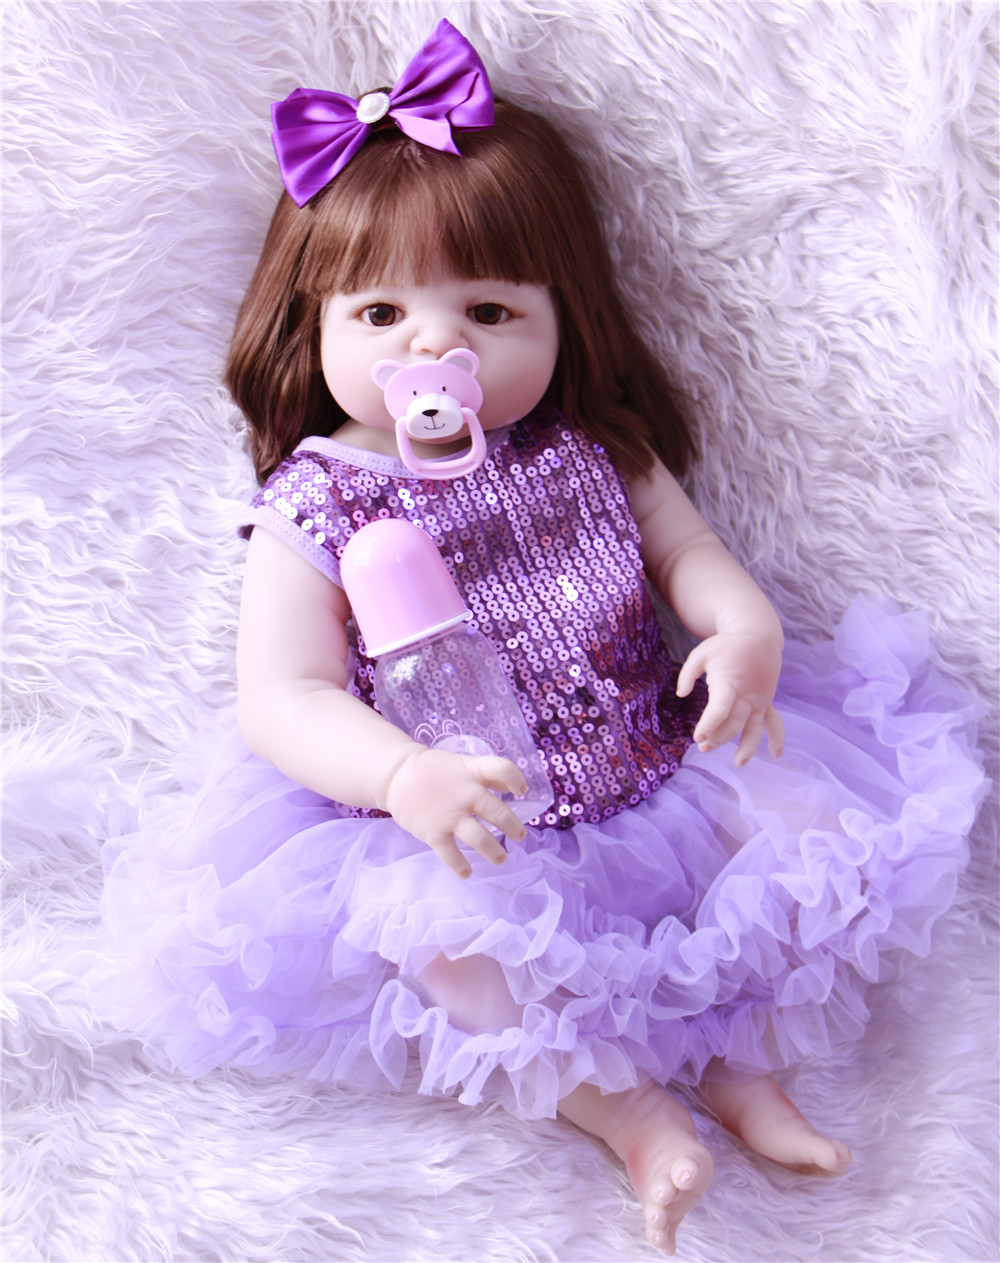 Princess pacifier+bottle 2257cm 100% full Vinyl silicone Reborn Baby Dolls Toy Lifelike Babies Girl Boneca kids birthday giftPrincess pacifier+bottle 2257cm 100% full Vinyl silicone Reborn Baby Dolls Toy Lifelike Babies Girl Boneca kids birthday gift